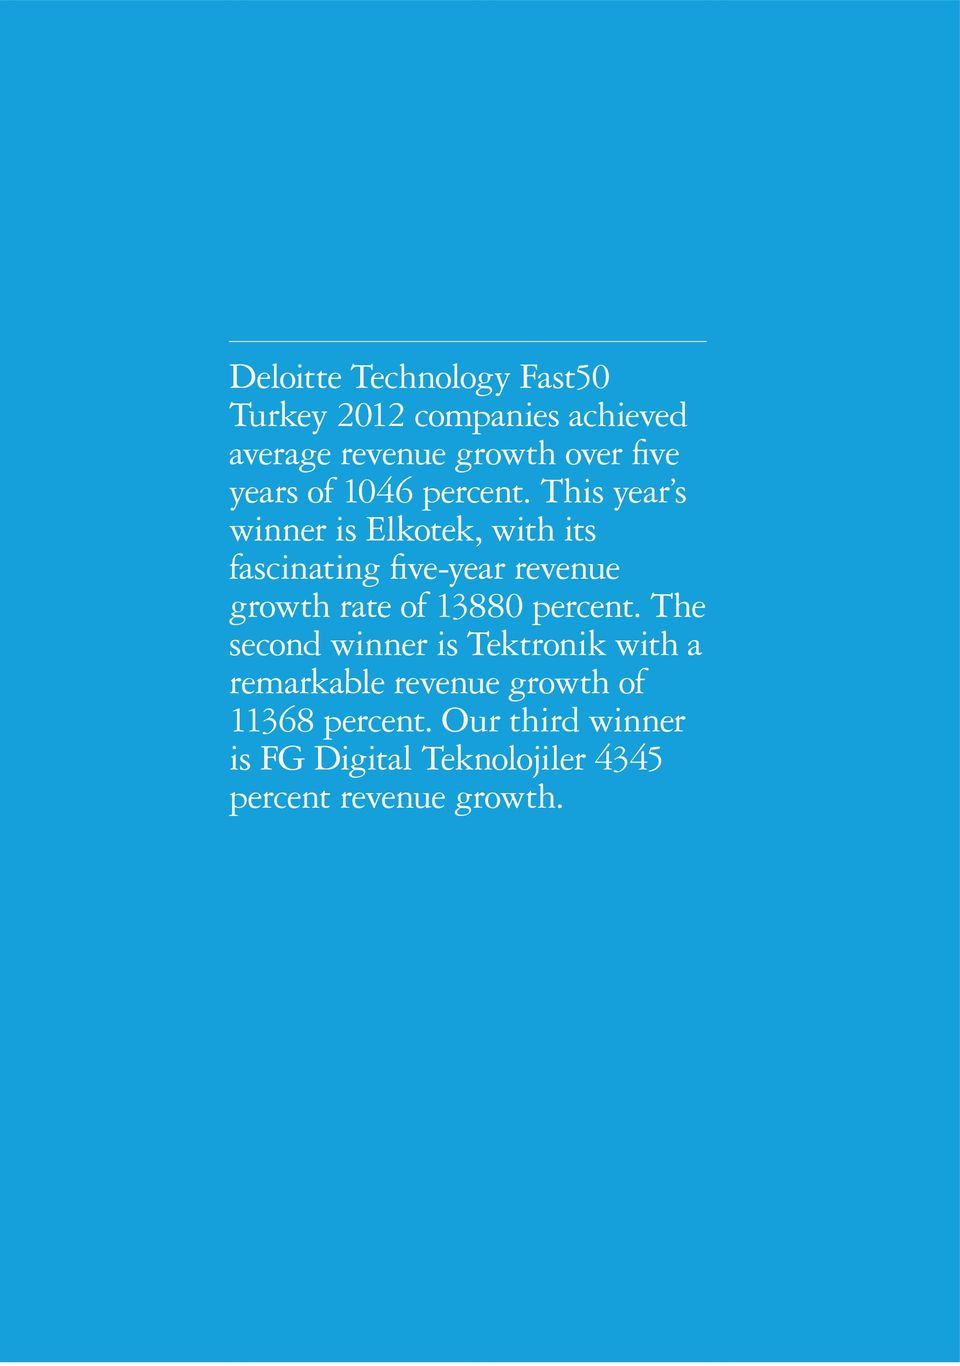 The second winner is Tektronik with a remarkable revenue growth of 11368 percent.